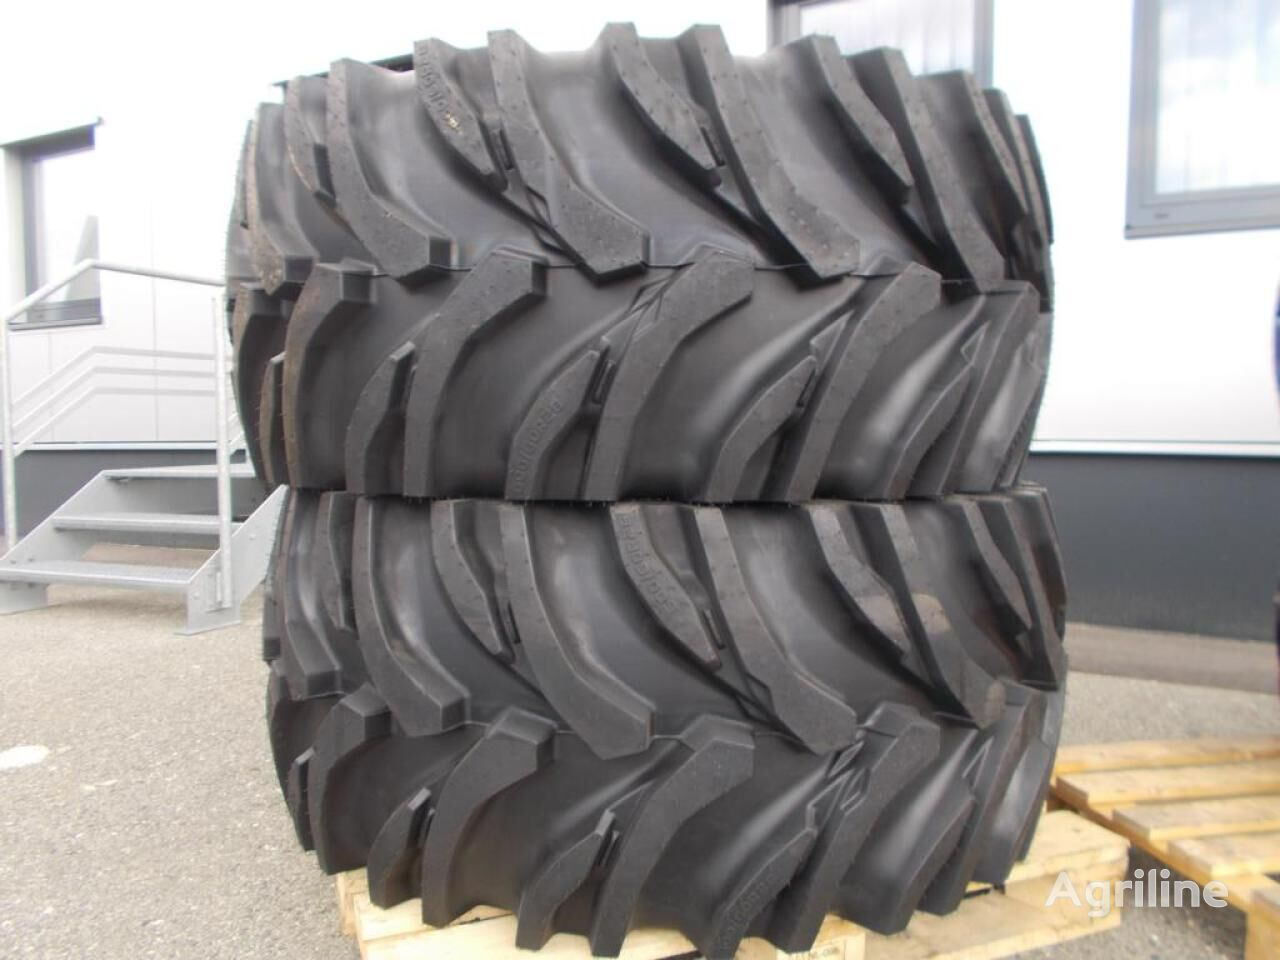 new Nokian R tractor tire